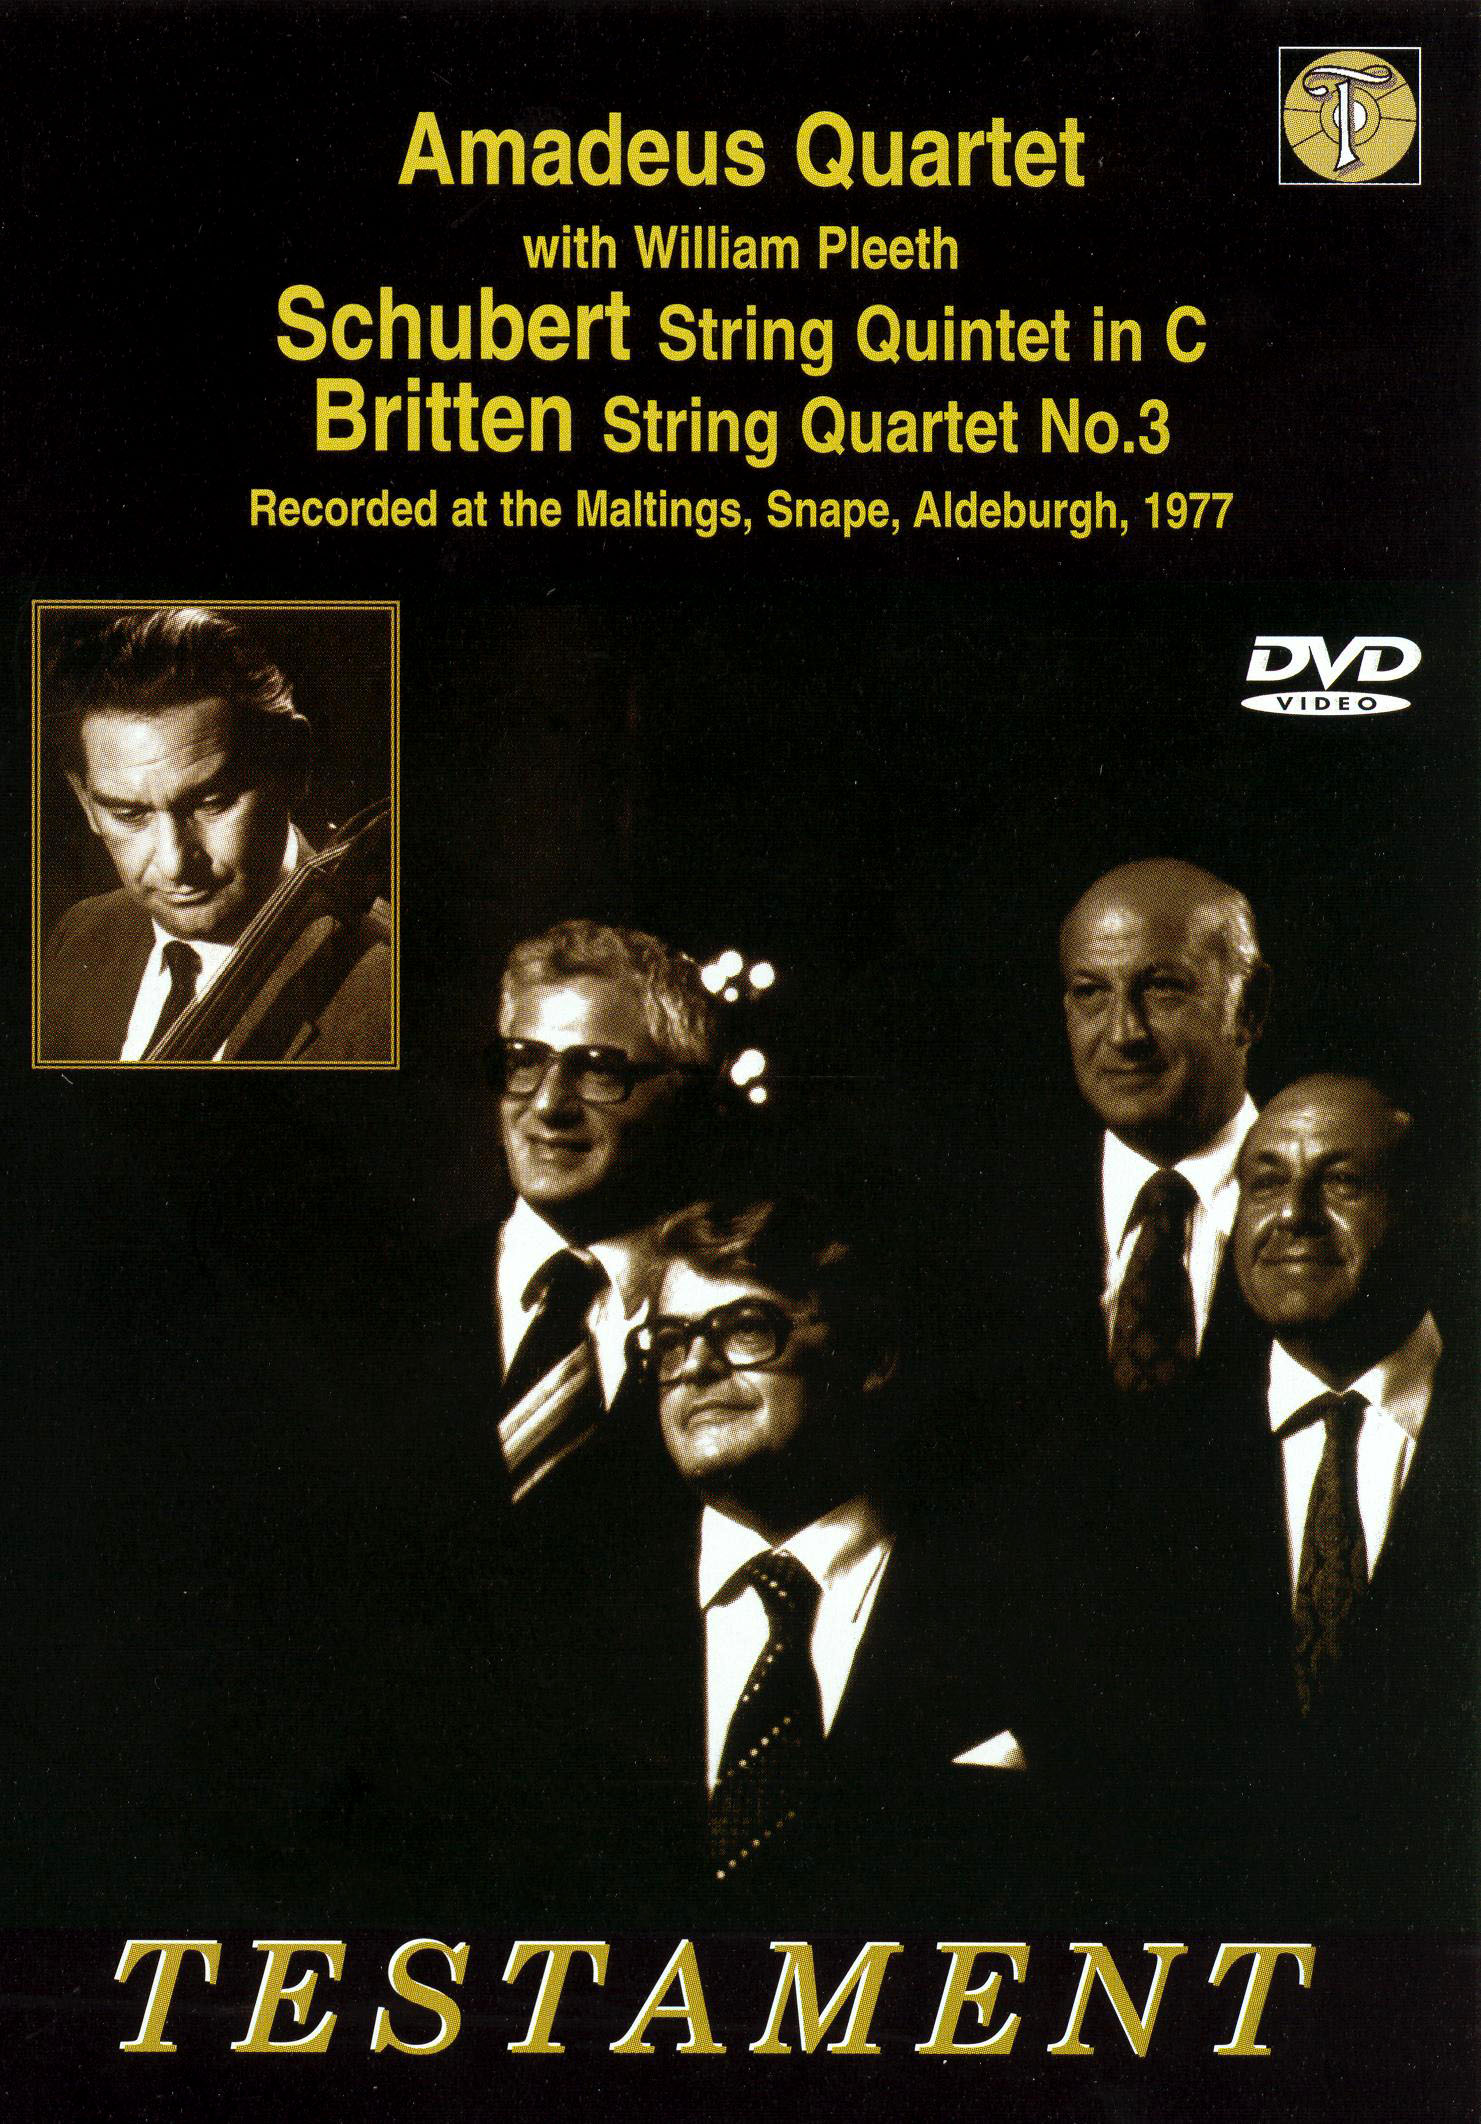 Schubert: String Quintet in C/Britten: String Quartet no. 3